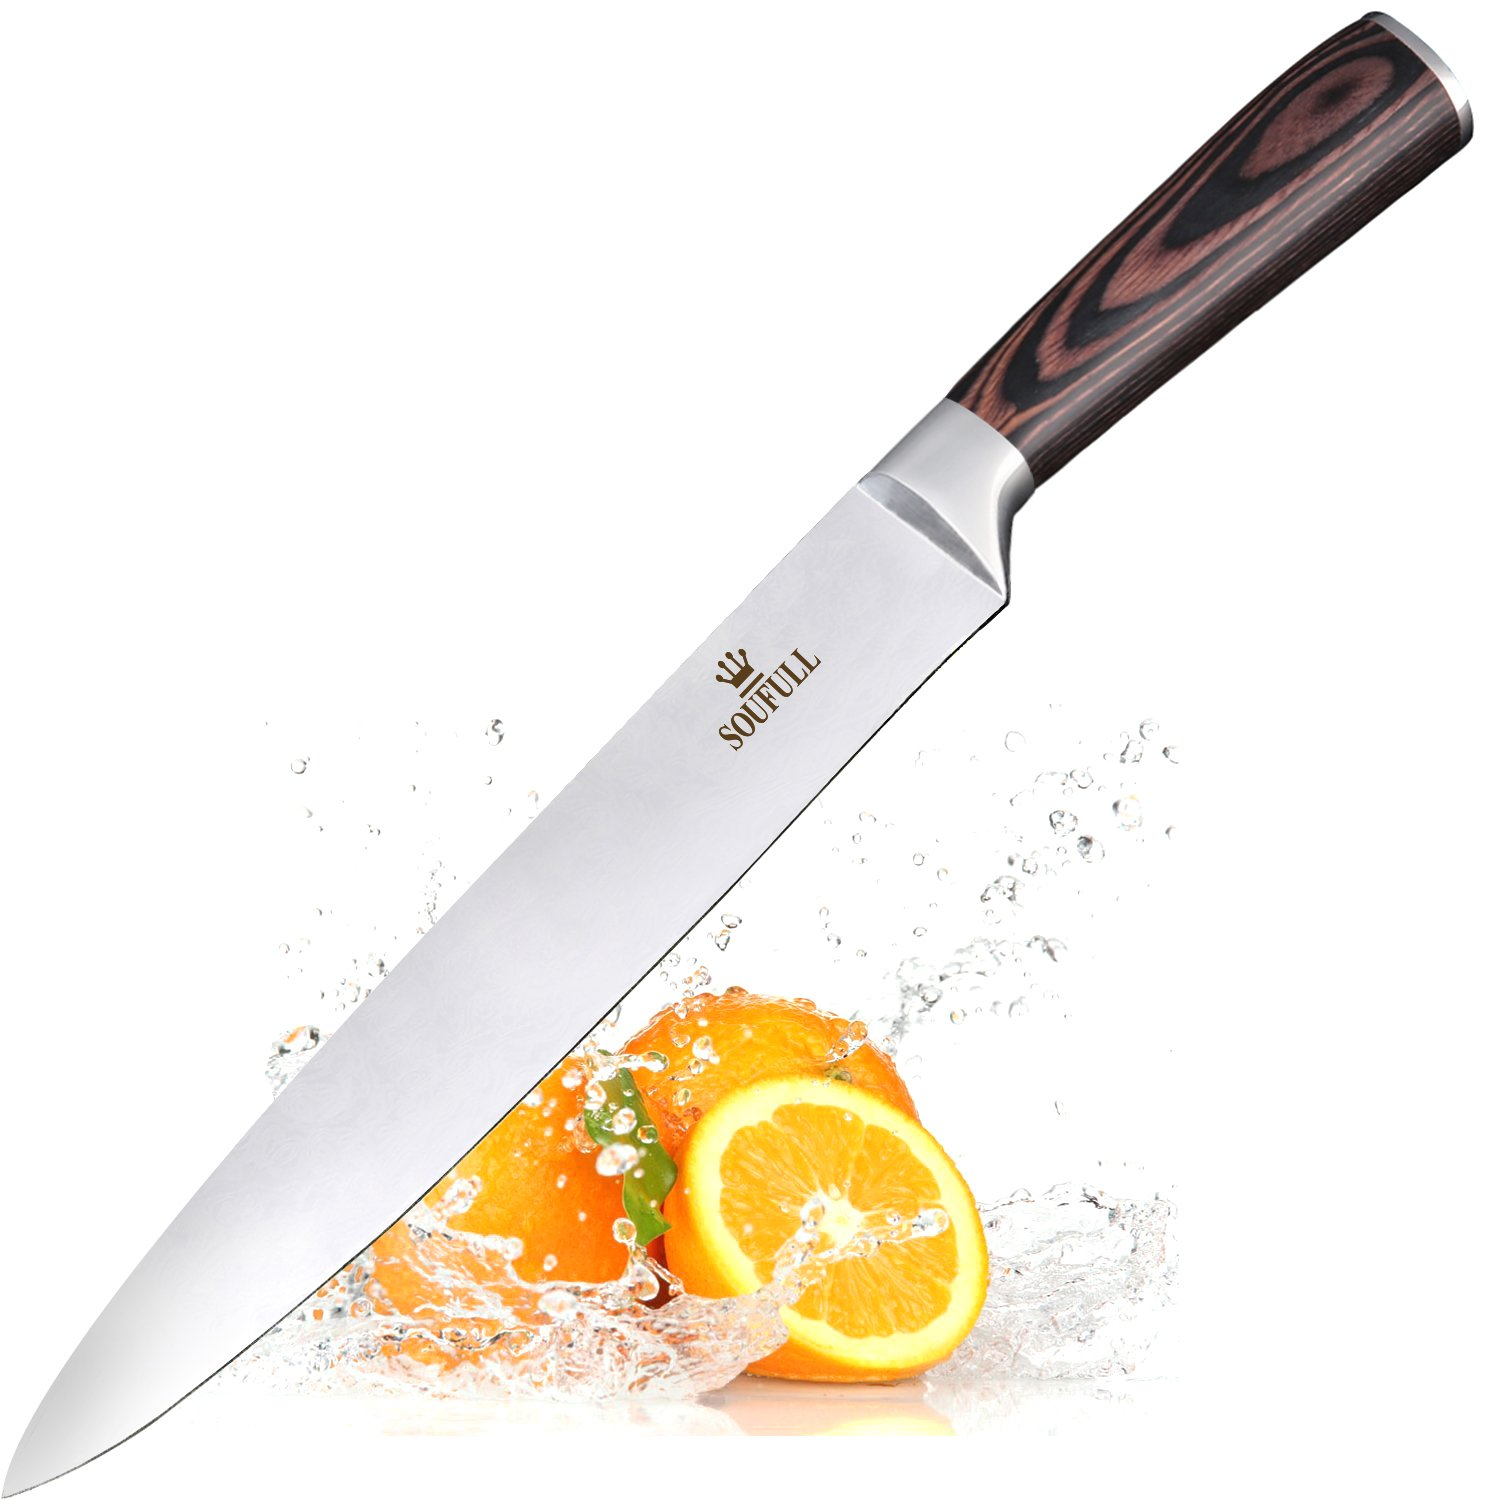 Chef Knife Soufull 8 inches High Carbon Stainless Steel Knife Japanese Professional Gyutou Knife with Ergonomic Handle